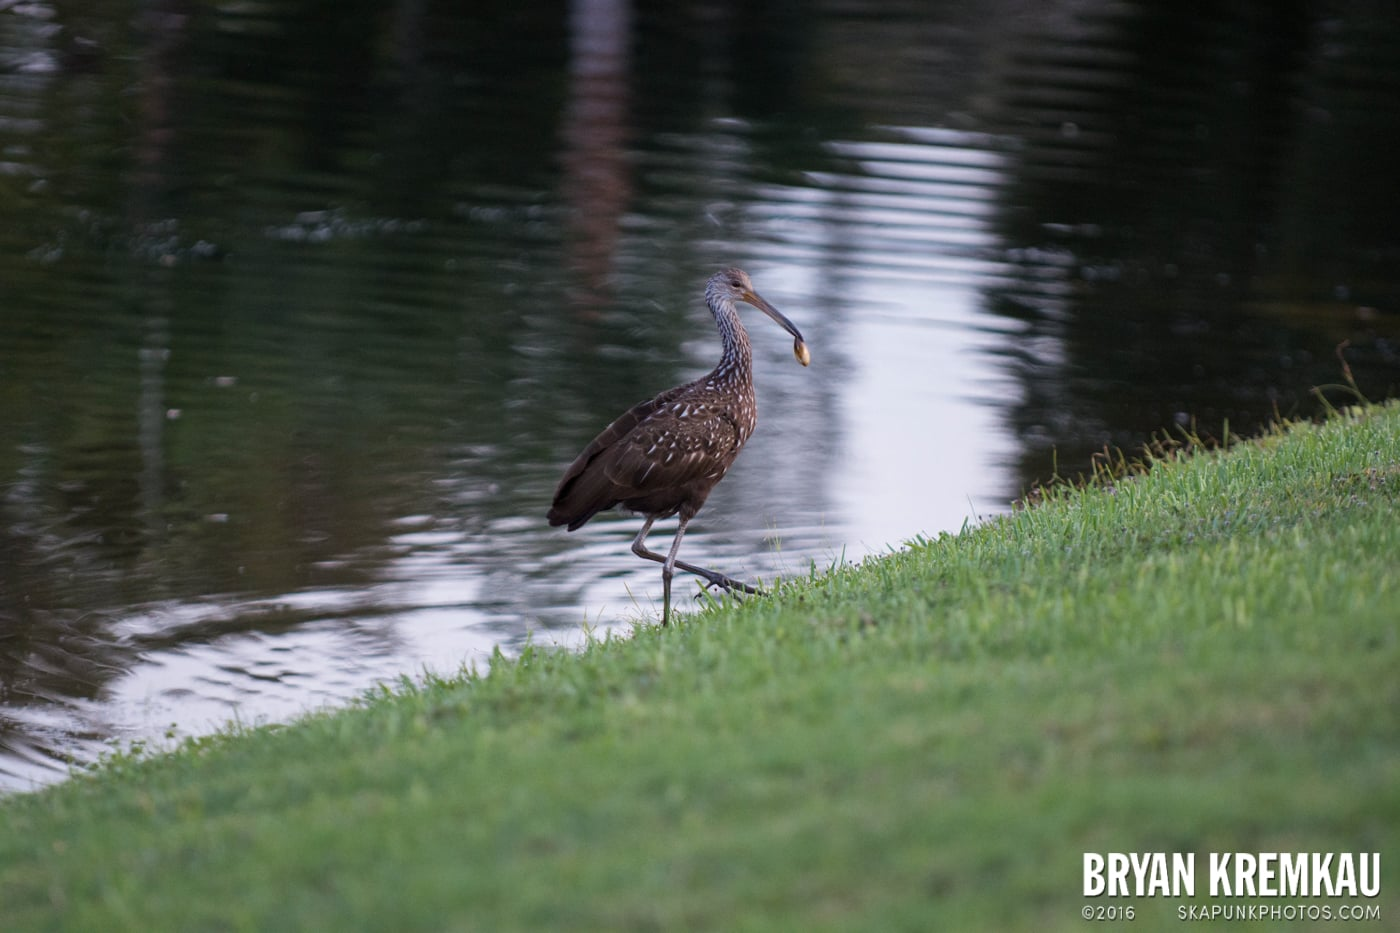 Sunsets, Astrophotography & Birds @ Venice, Florida - 10.25.14 - 11.5.14 (24)